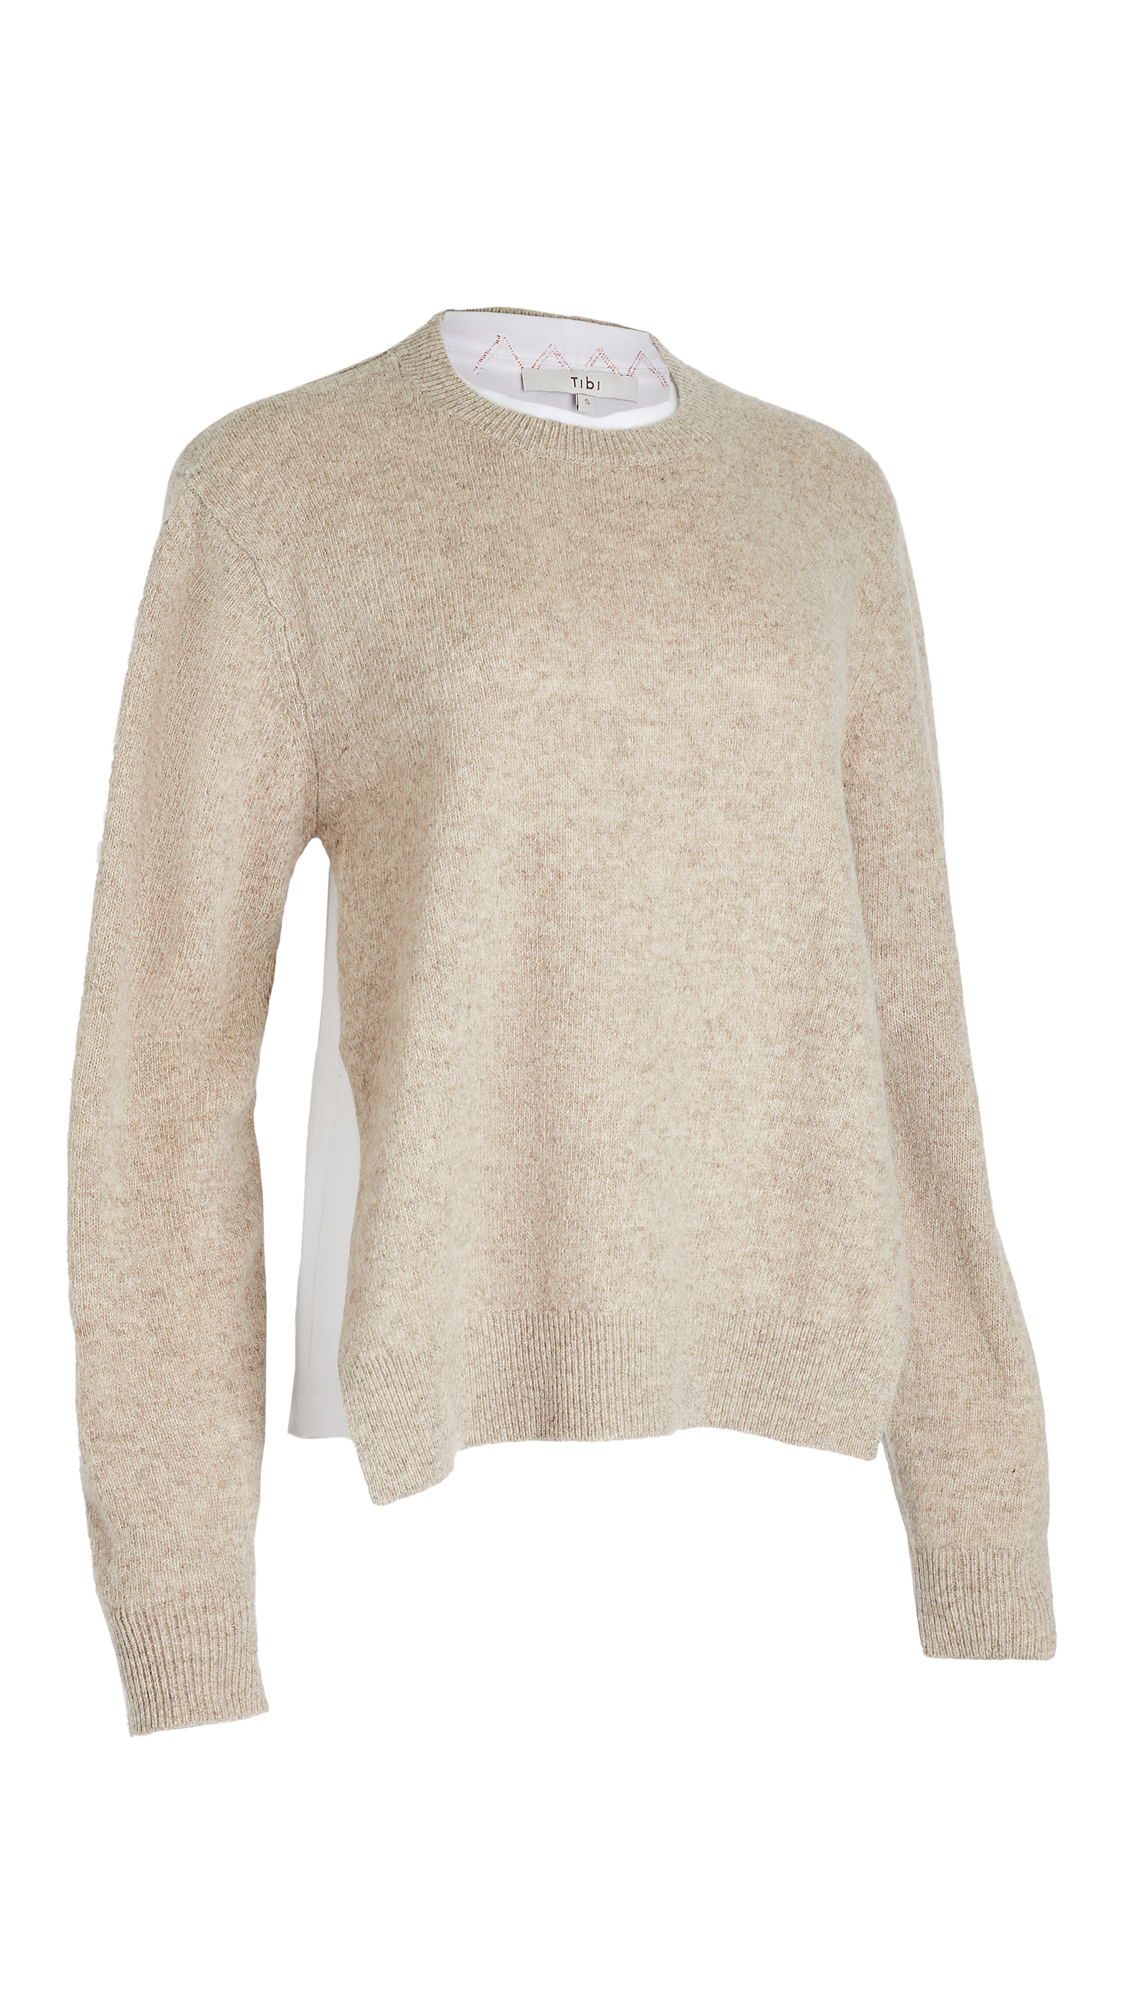 Tibi PULLOVER INSIDE LAYERED T-SHIRT